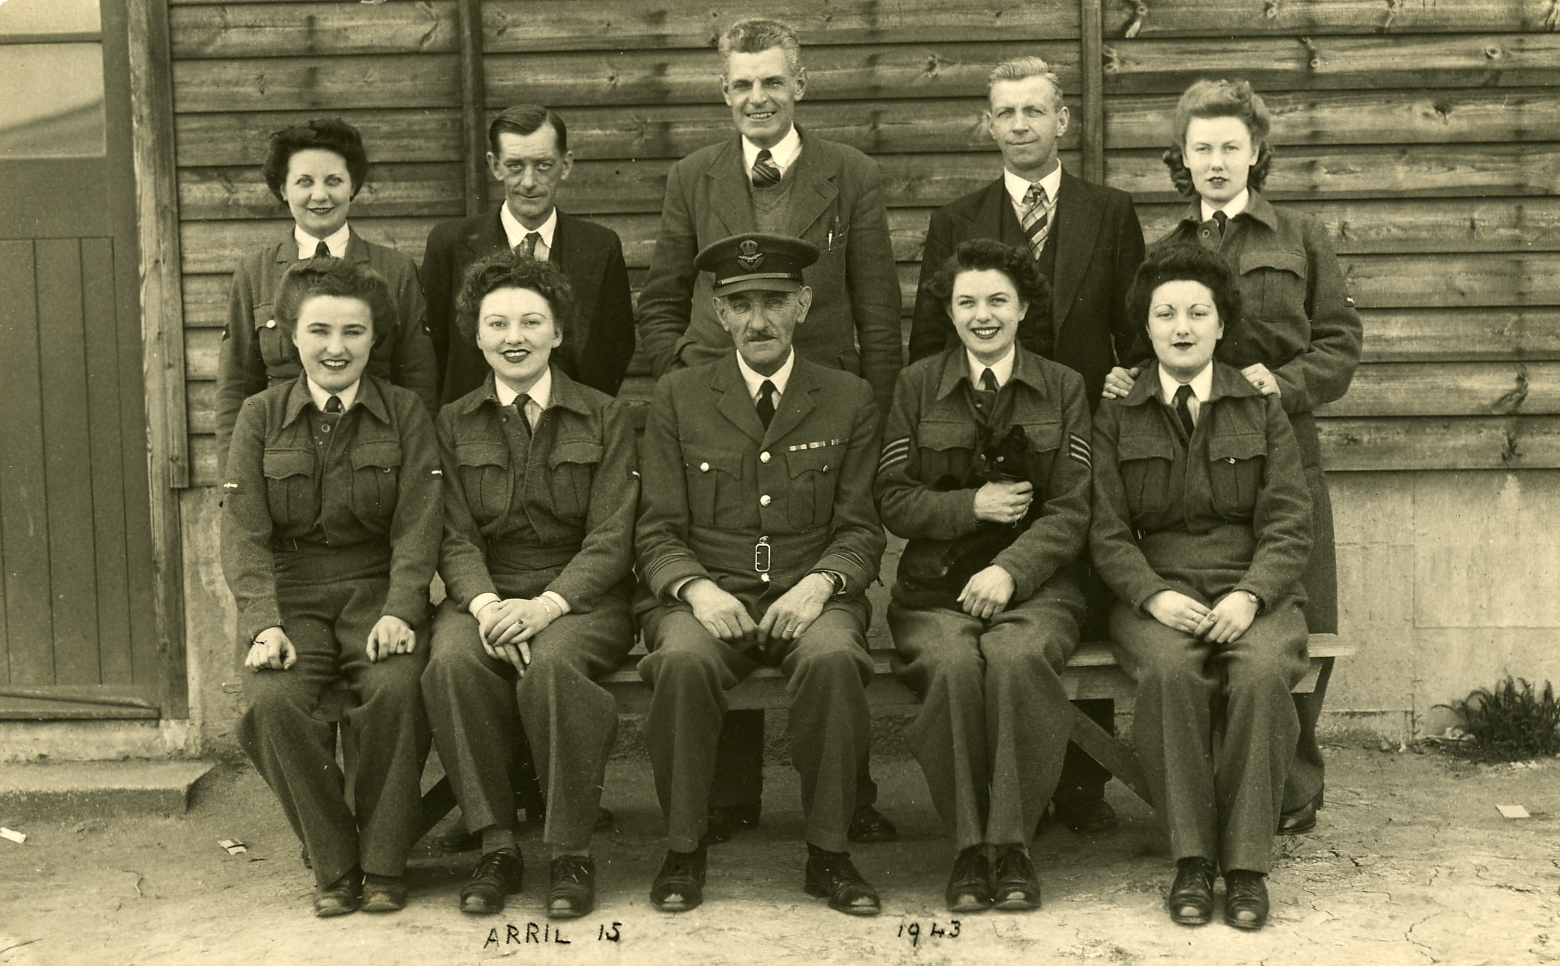 Pictured at Cardington Camp Bedford during WW2